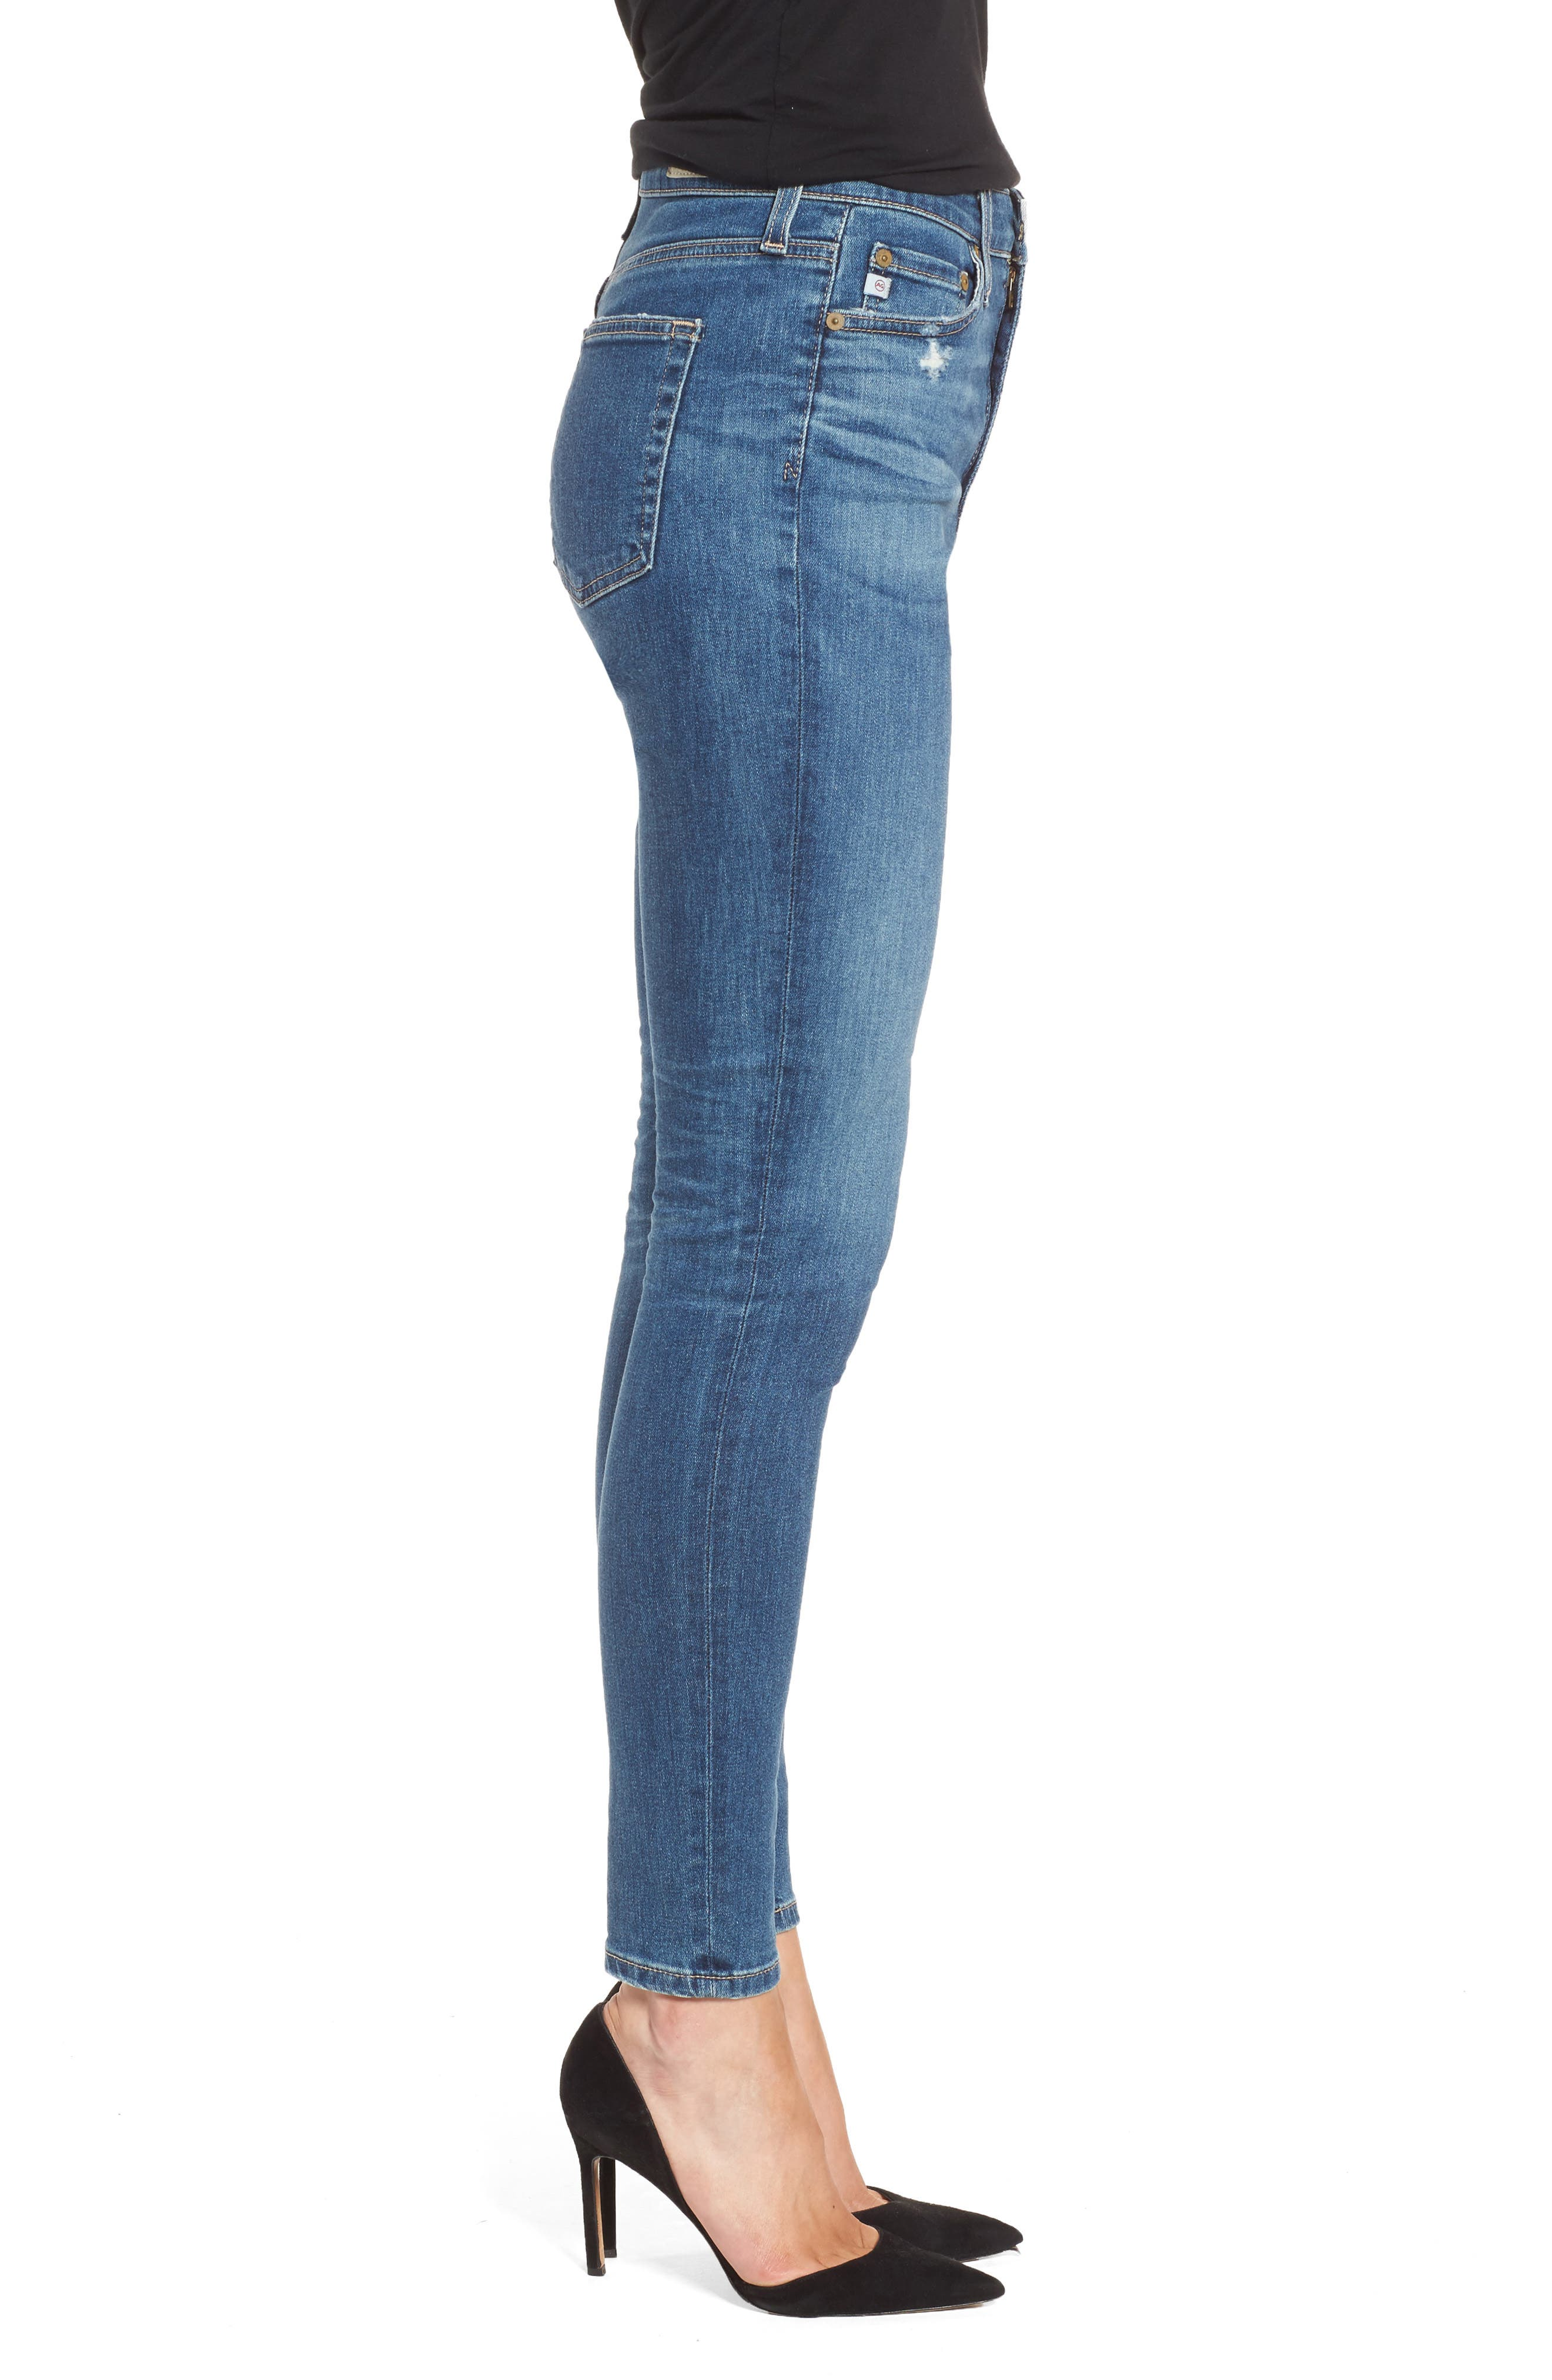 Mila Ankle Skinny Jeans,                             Alternate thumbnail 3, color,                             8 YEARS INFAMY